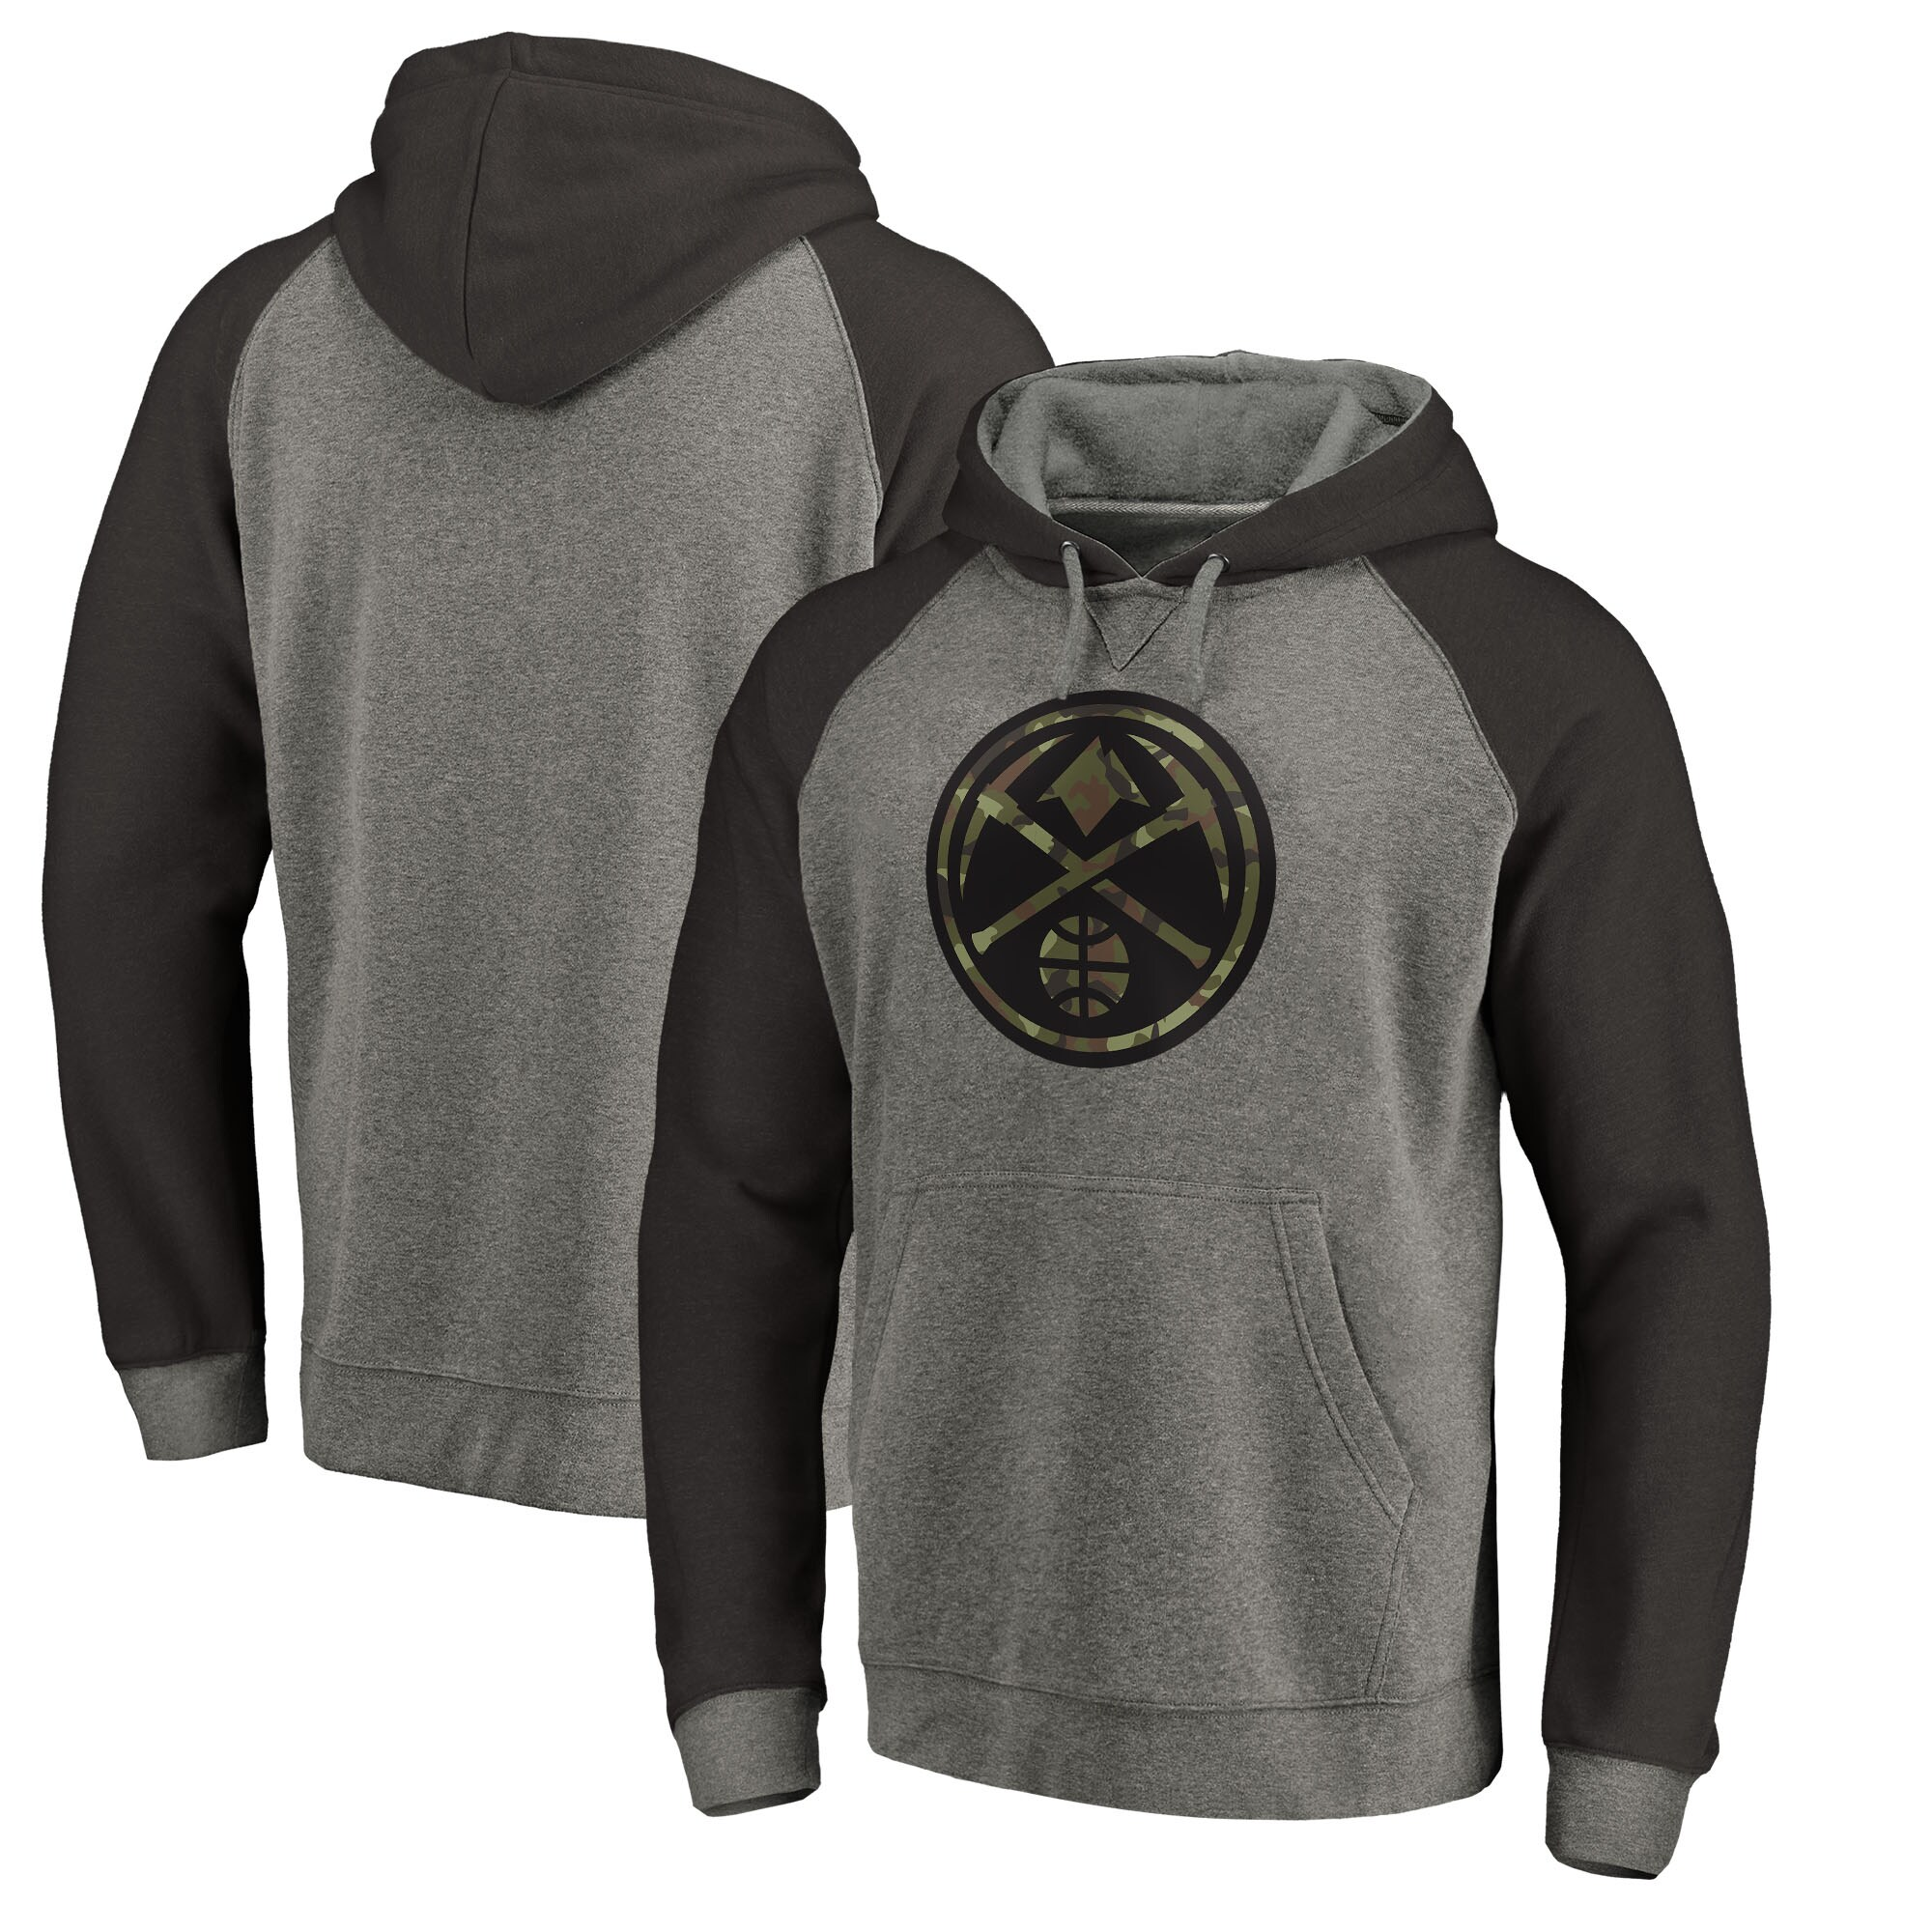 Denver Nuggets Fanatics Branded Prestige Camo Tri-Blend Raglan Pullover Hoodie - Heather Gray